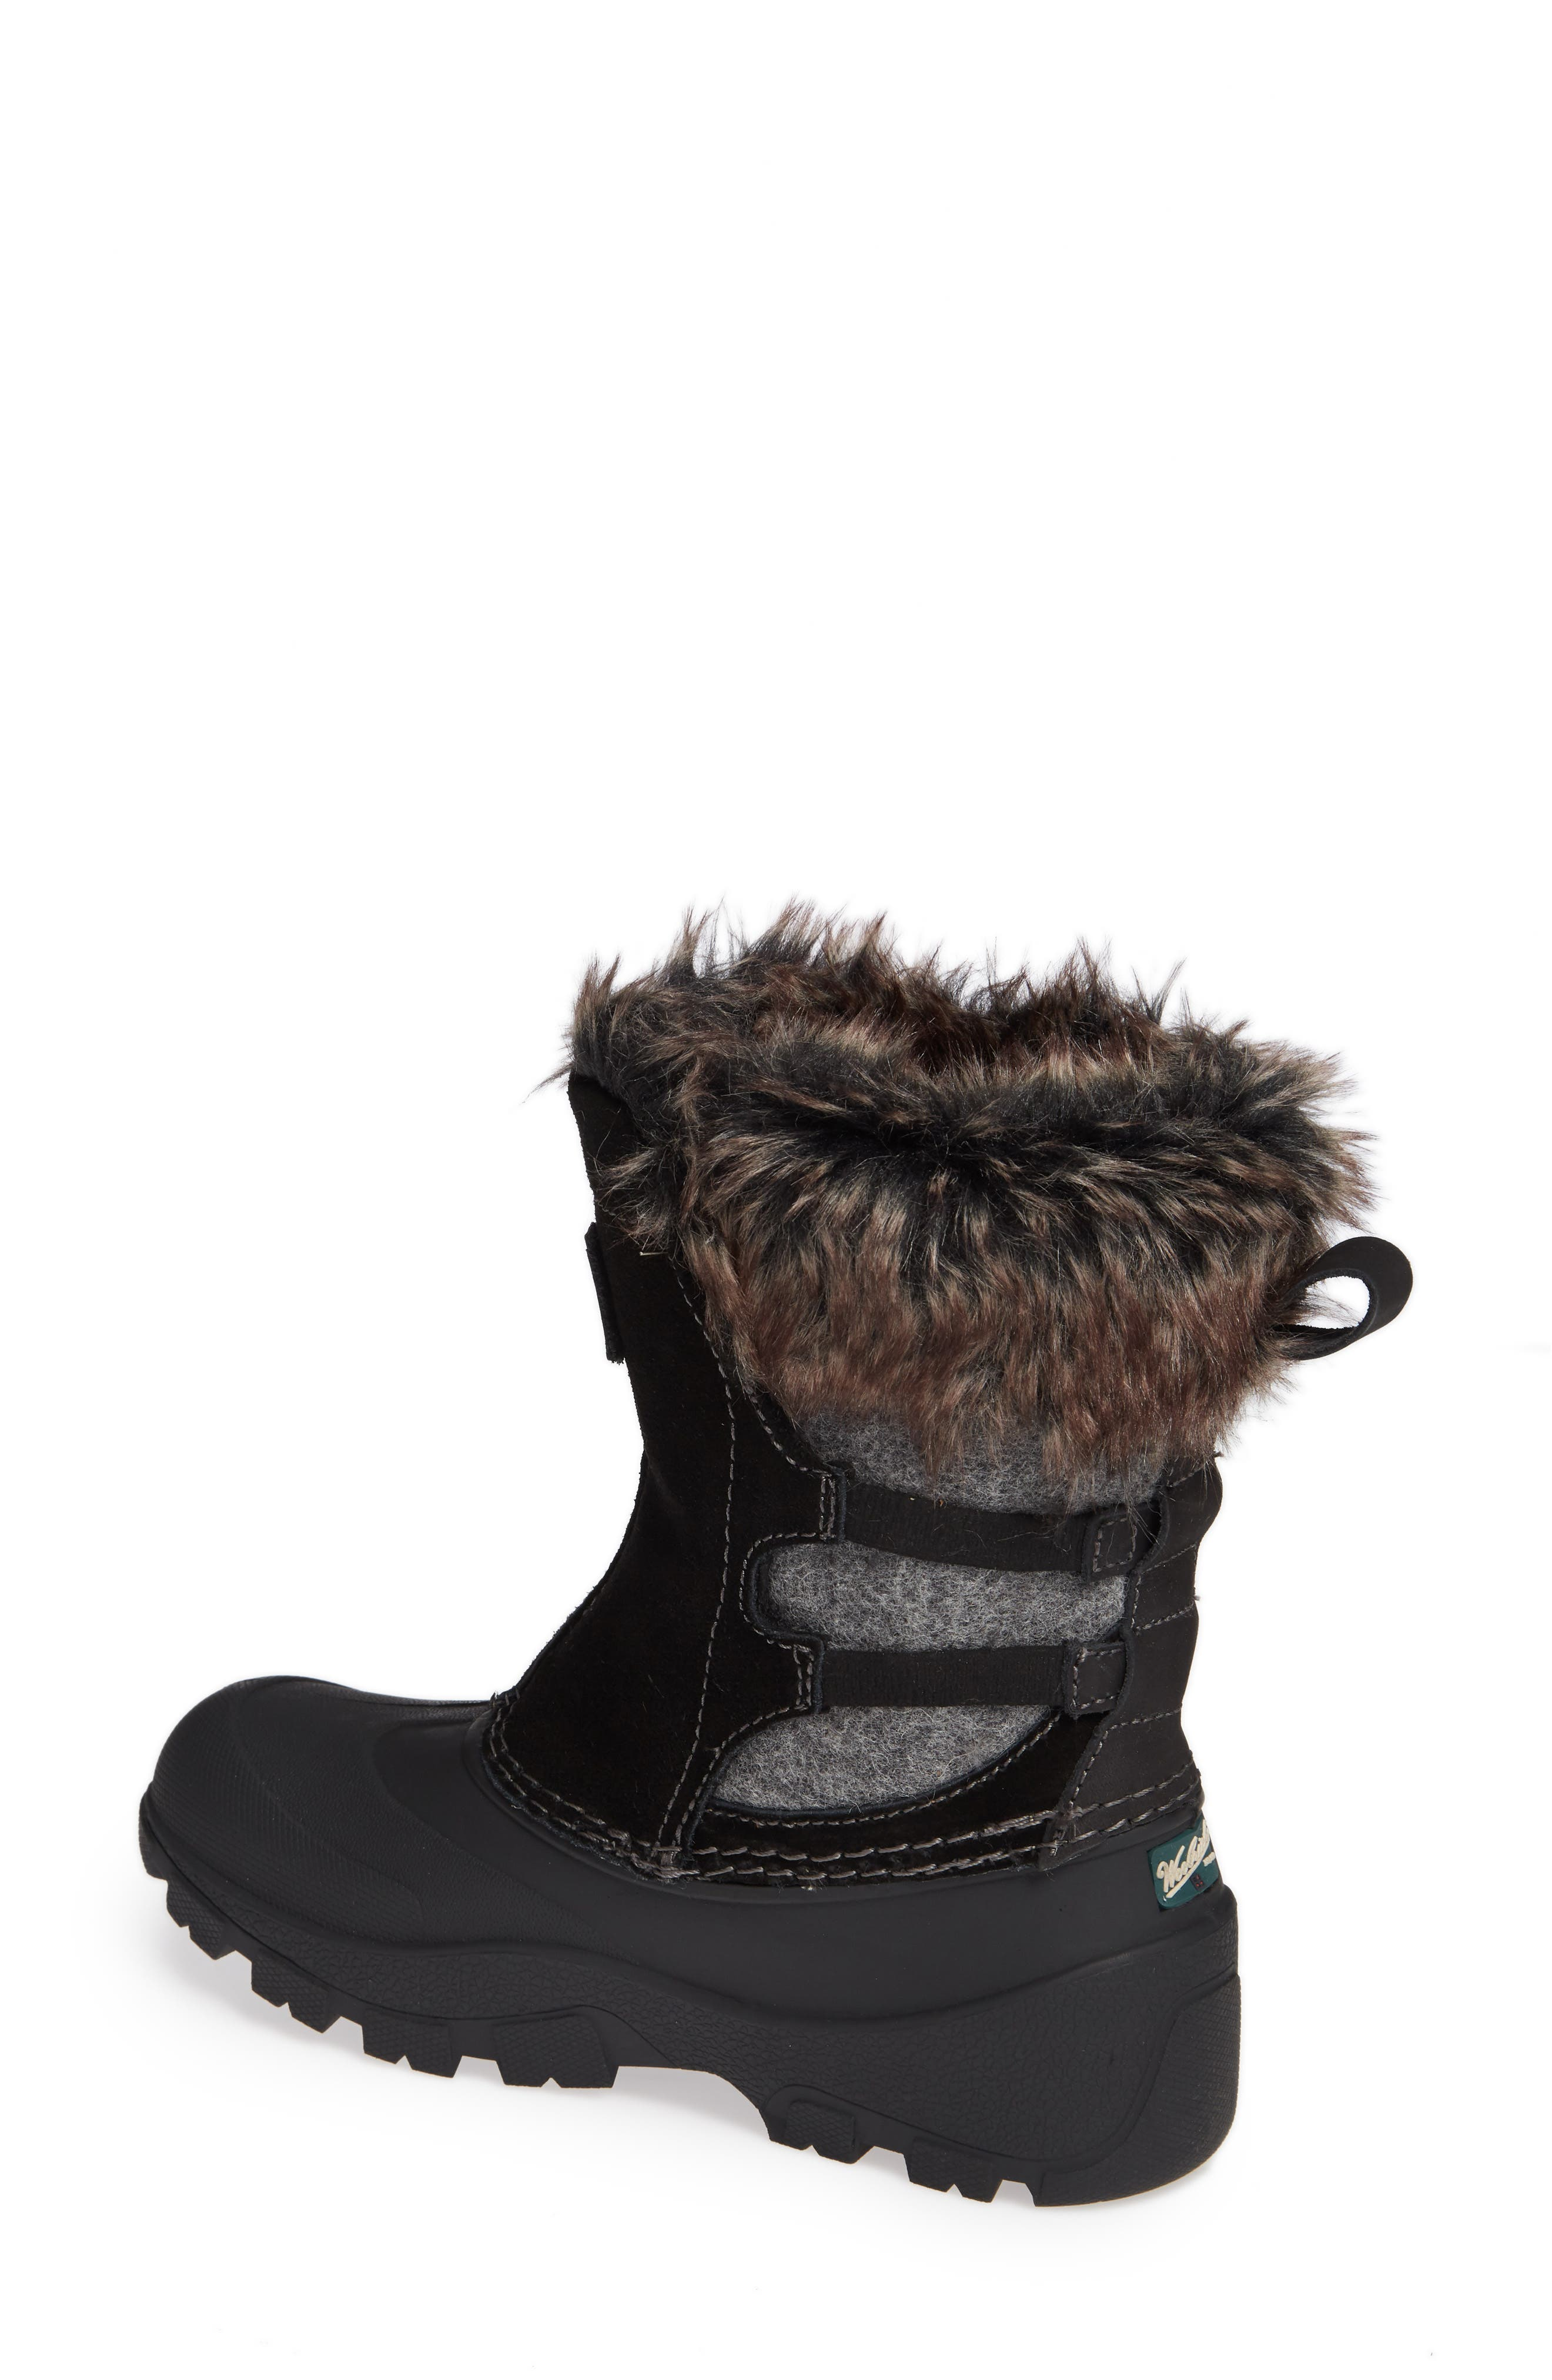 Icecat II Fully Wooly Waterproof Insulated Winter Boot,                             Alternate thumbnail 2, color,                             BLACK WOOL